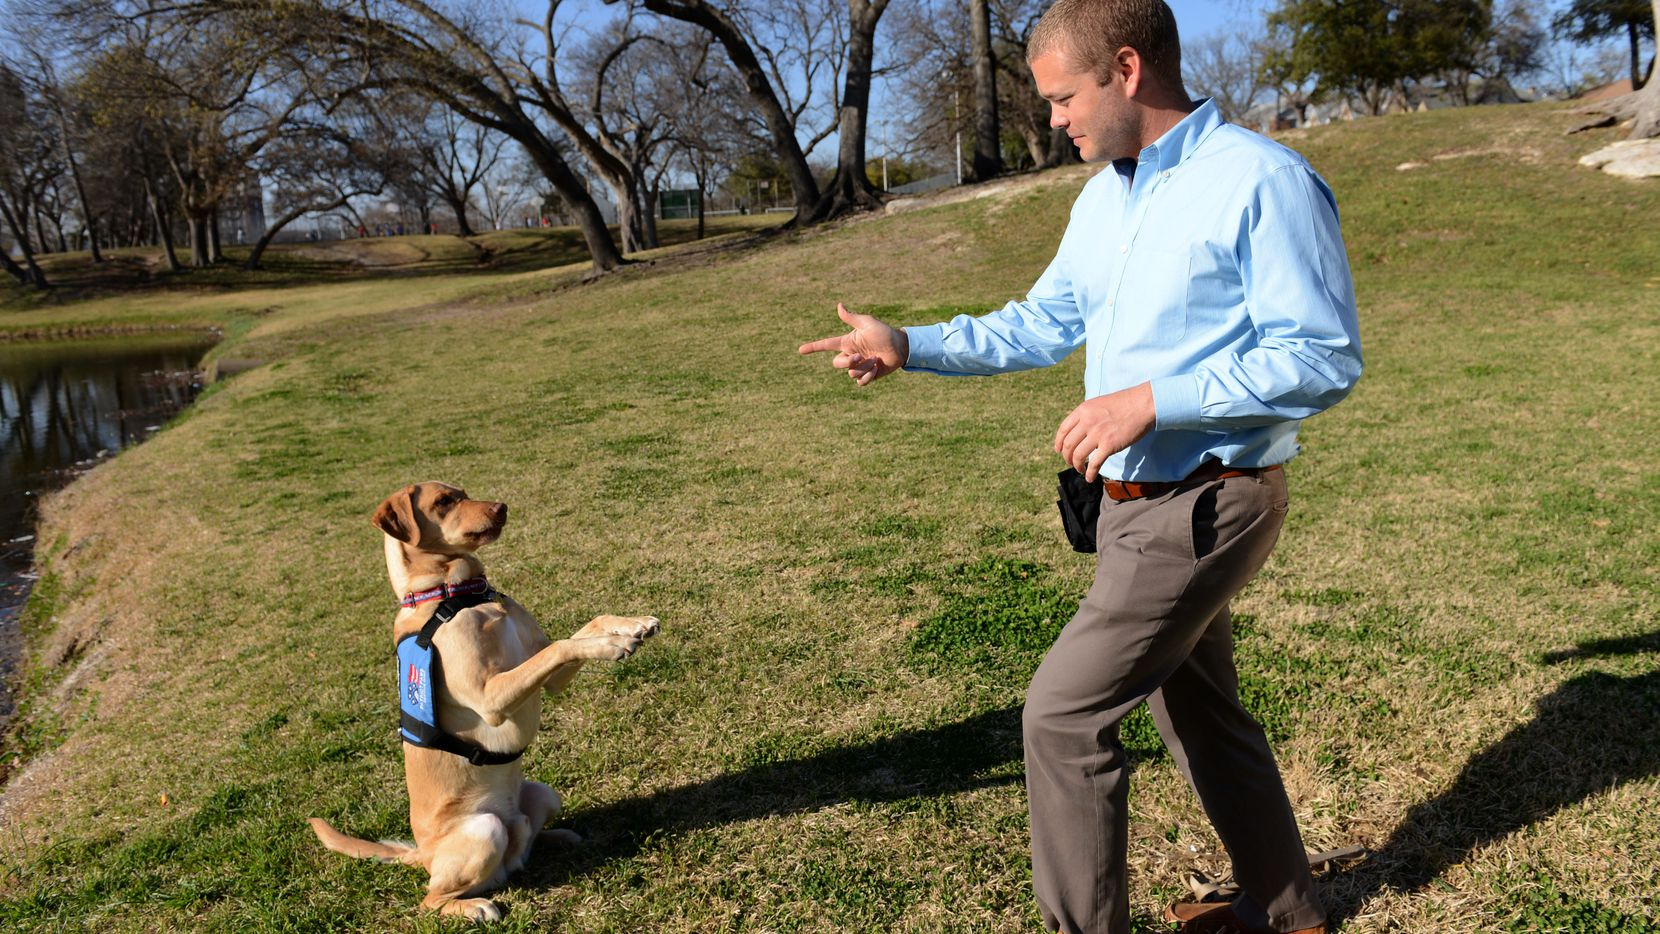 """Dustin Deweerd does the """"stick 'em up"""" trick with his 3-year-old Labrador service dog Gunny, at Lake Cliff Park on March 20, 2014 in Dallas. Gunny helps Deweerd, a U.S. Army veteran, cope with his Post Traumatic Stress Syndrome after serving in Irag and Afghanistan for two years."""